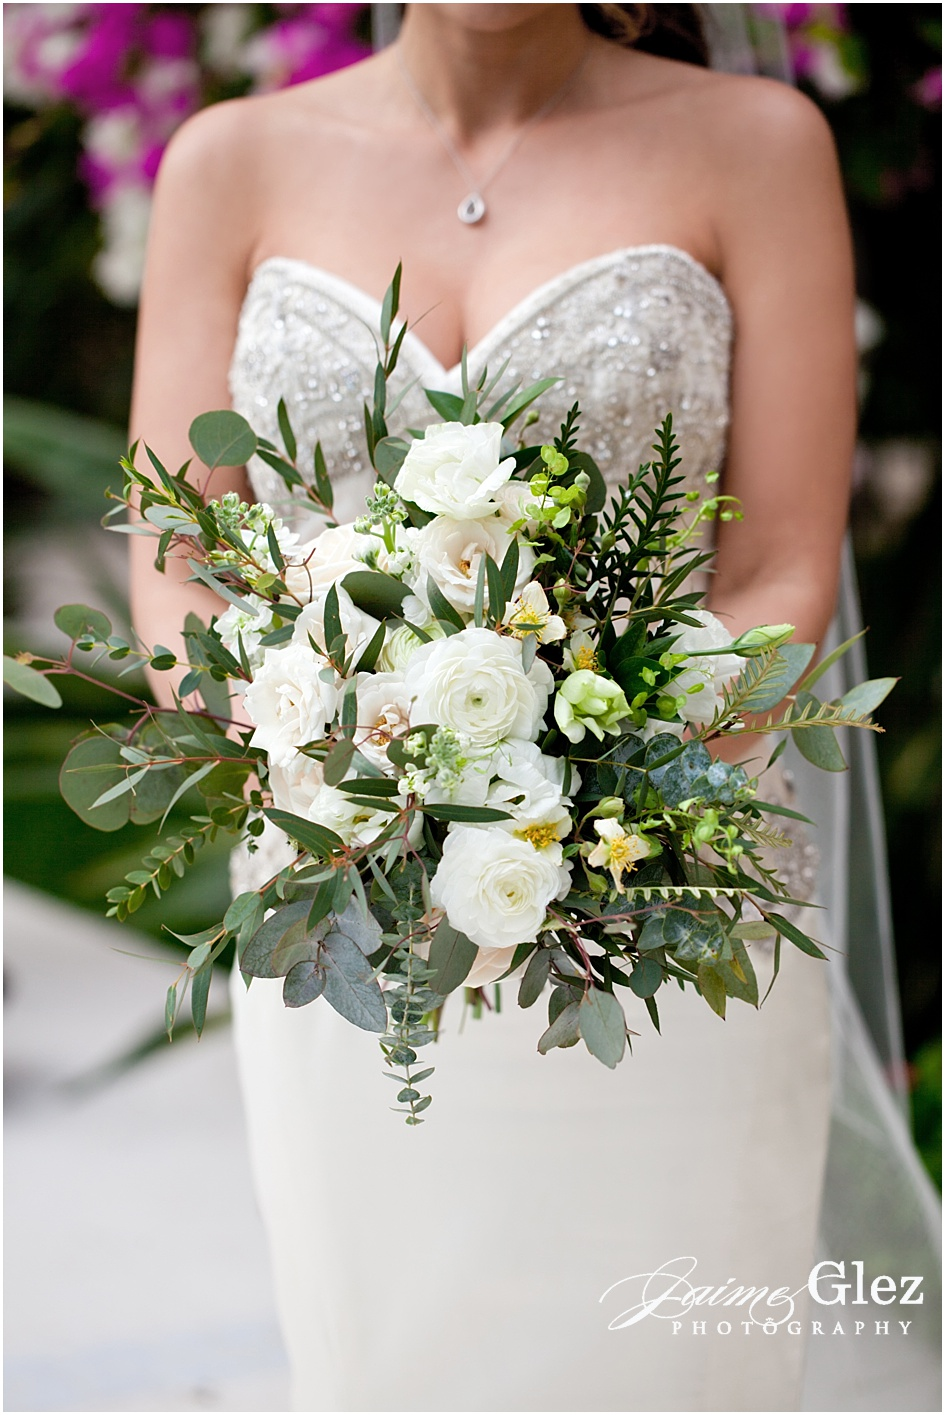 So fresh and elegant bridal summer bouquet.